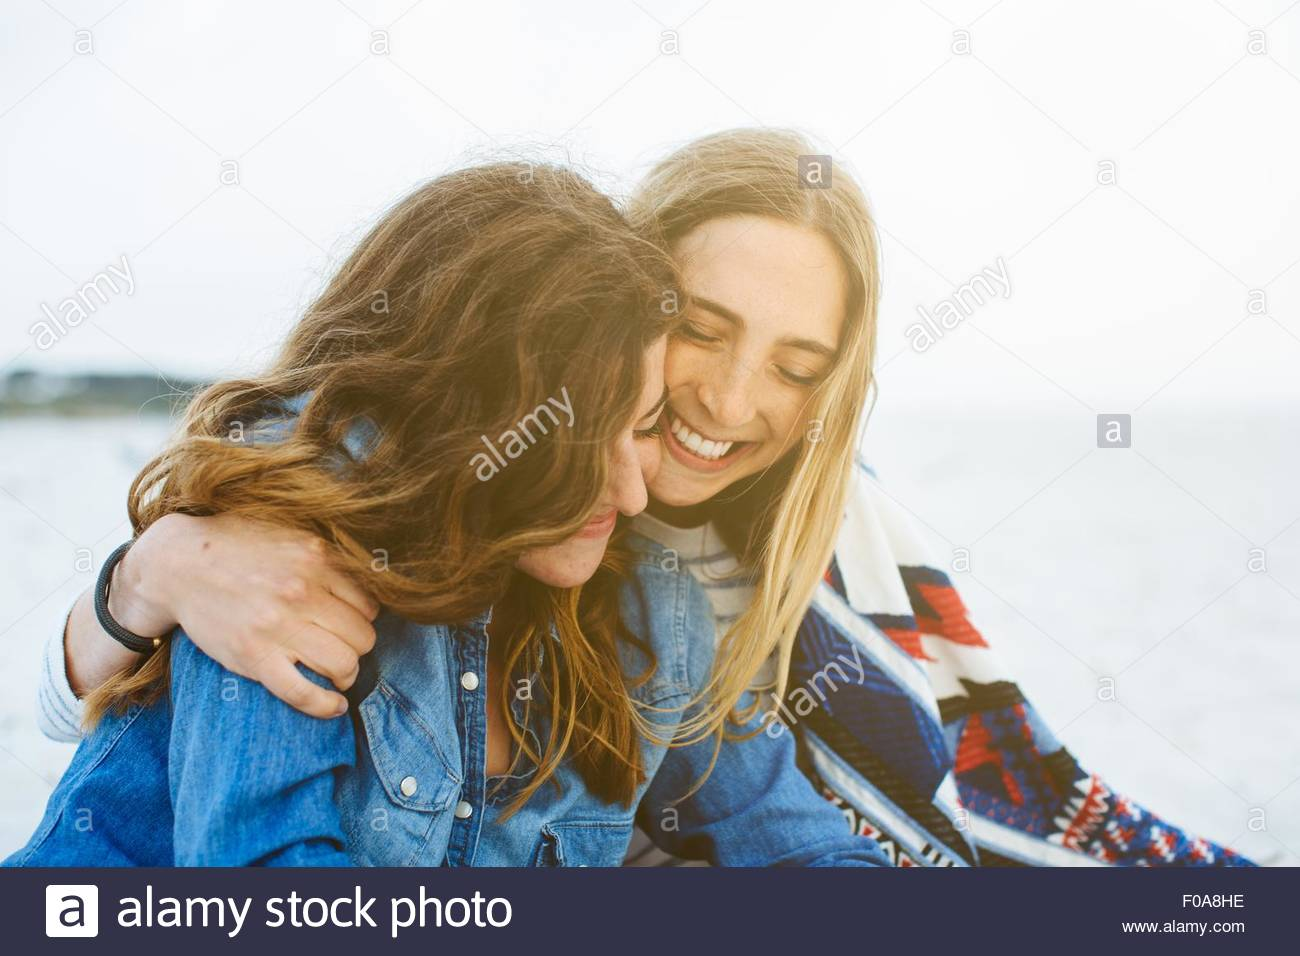 Two young female friends sitting on beach - Stock Image